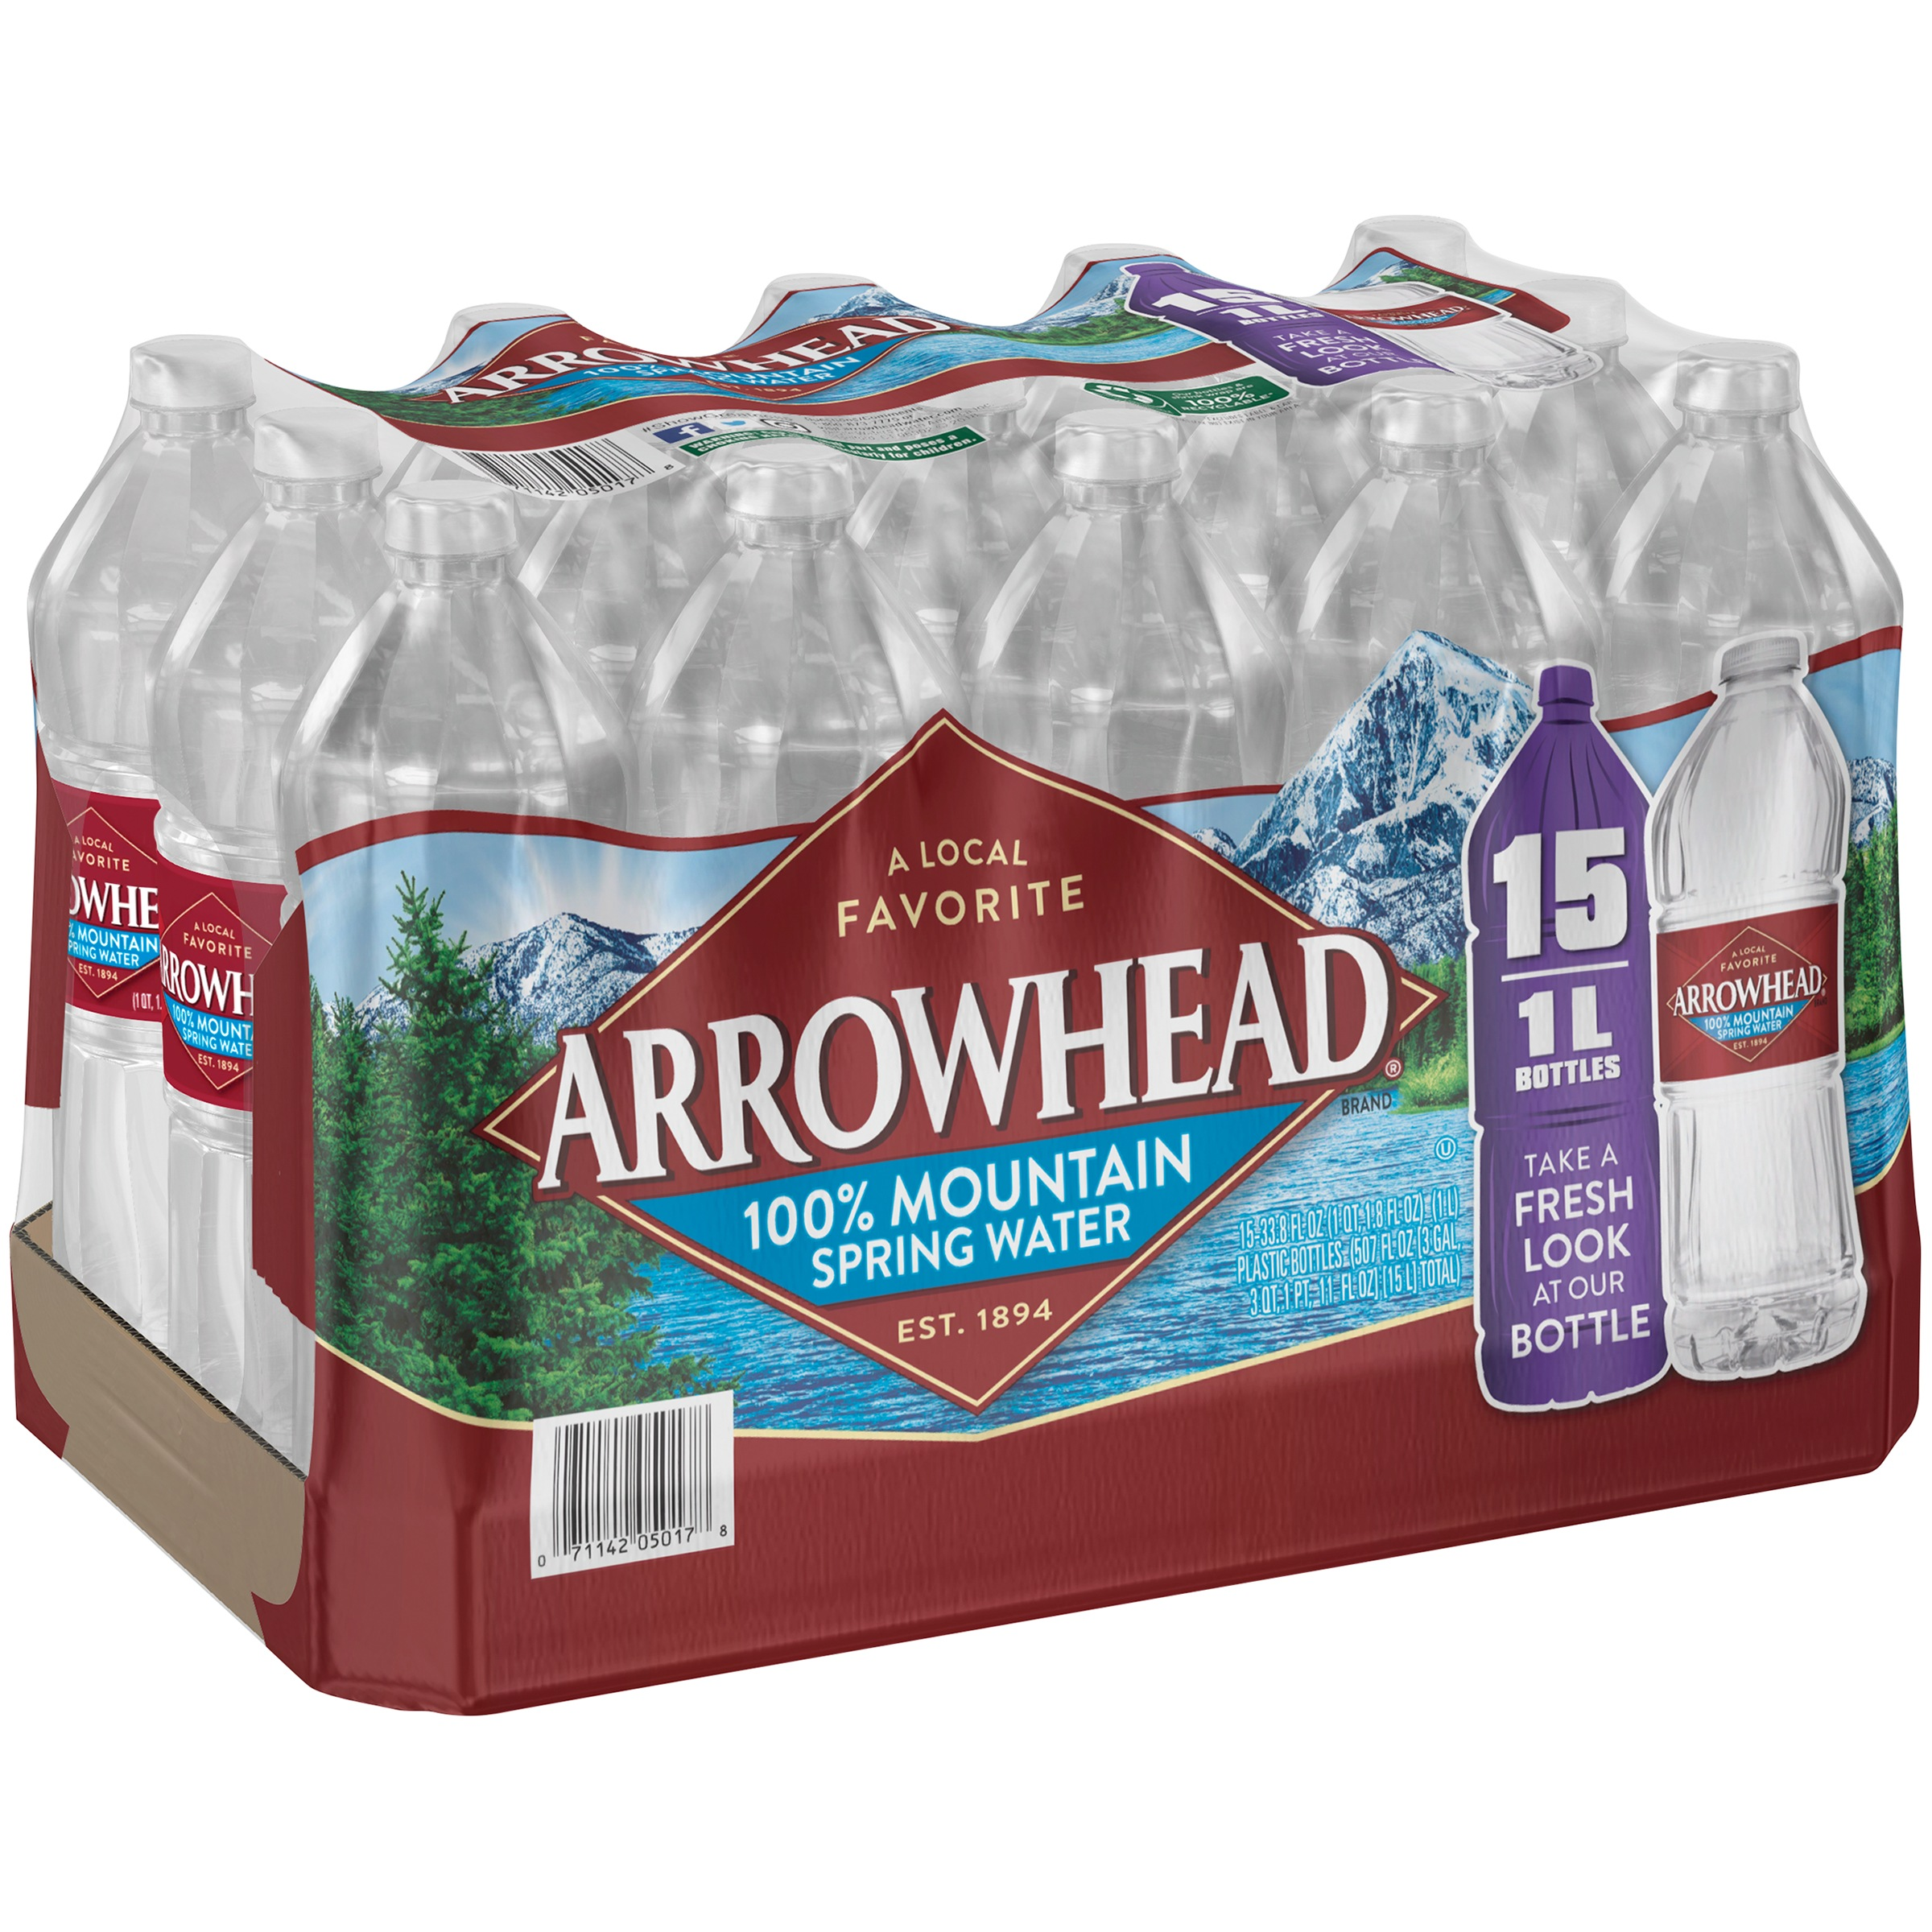 Arrowhead All Natural Mountain Spring Water, 1 L, 15 Count